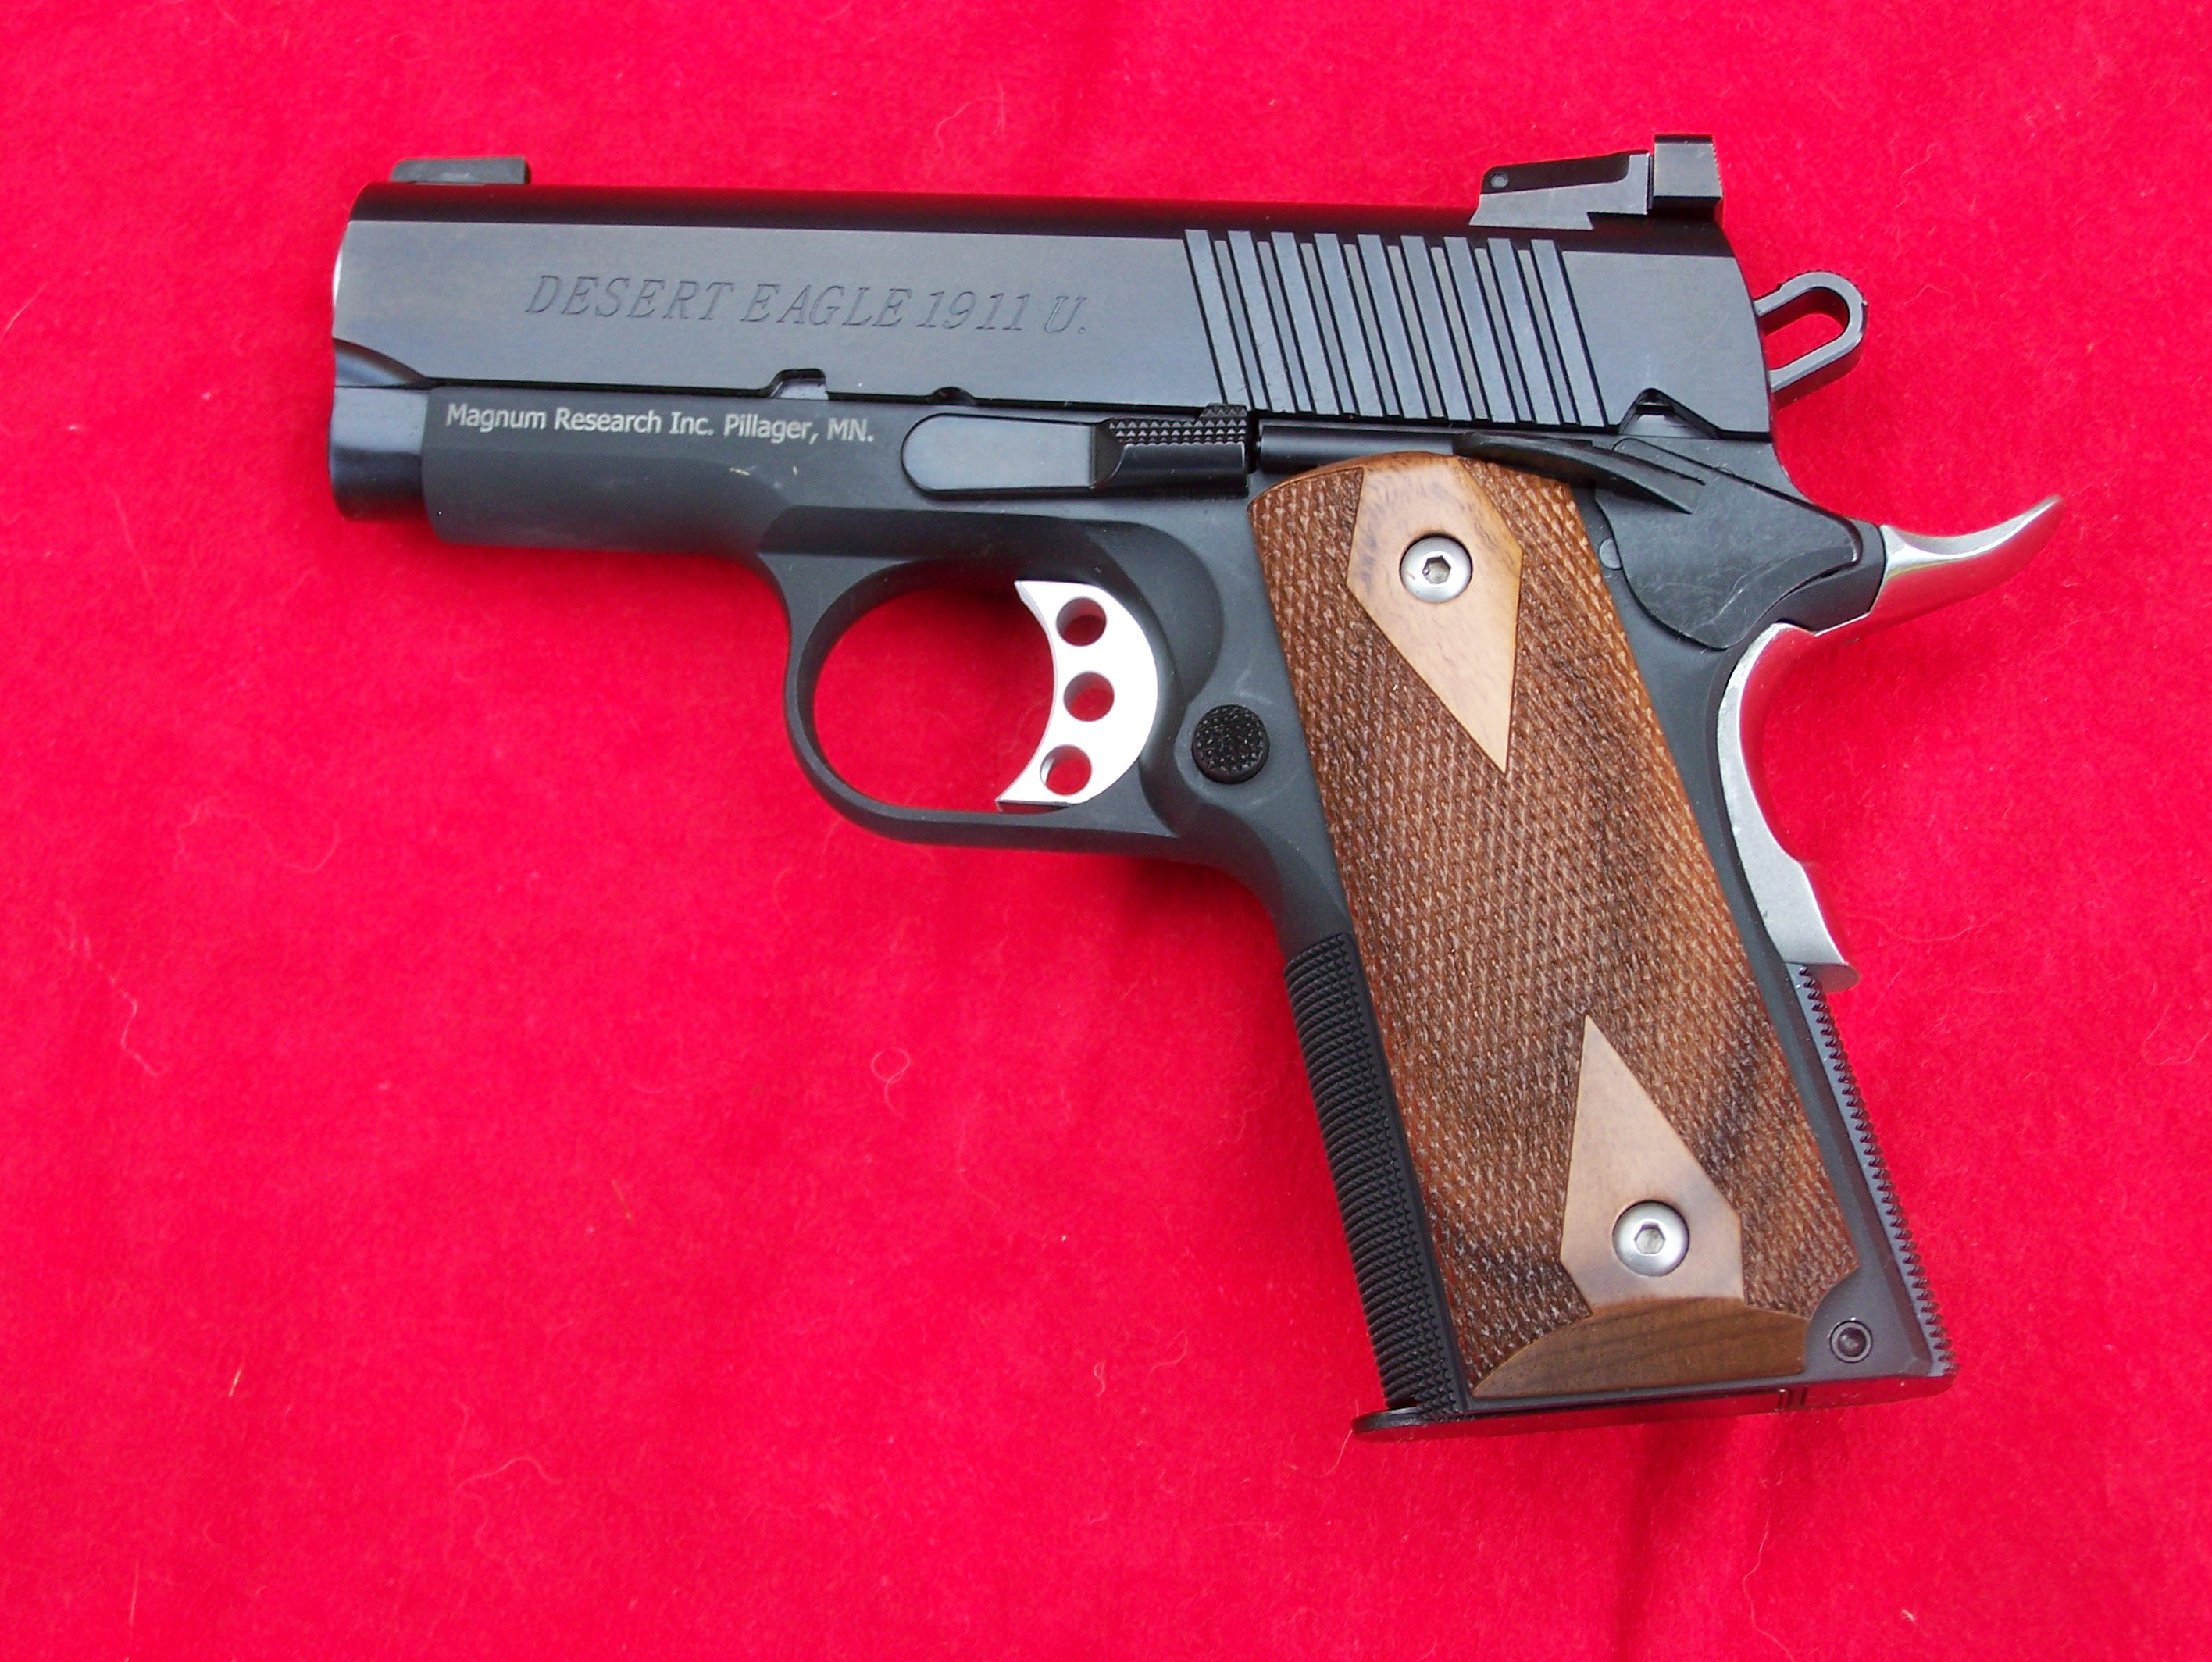 Review: Magnum Research's Desert Eagle 1911U